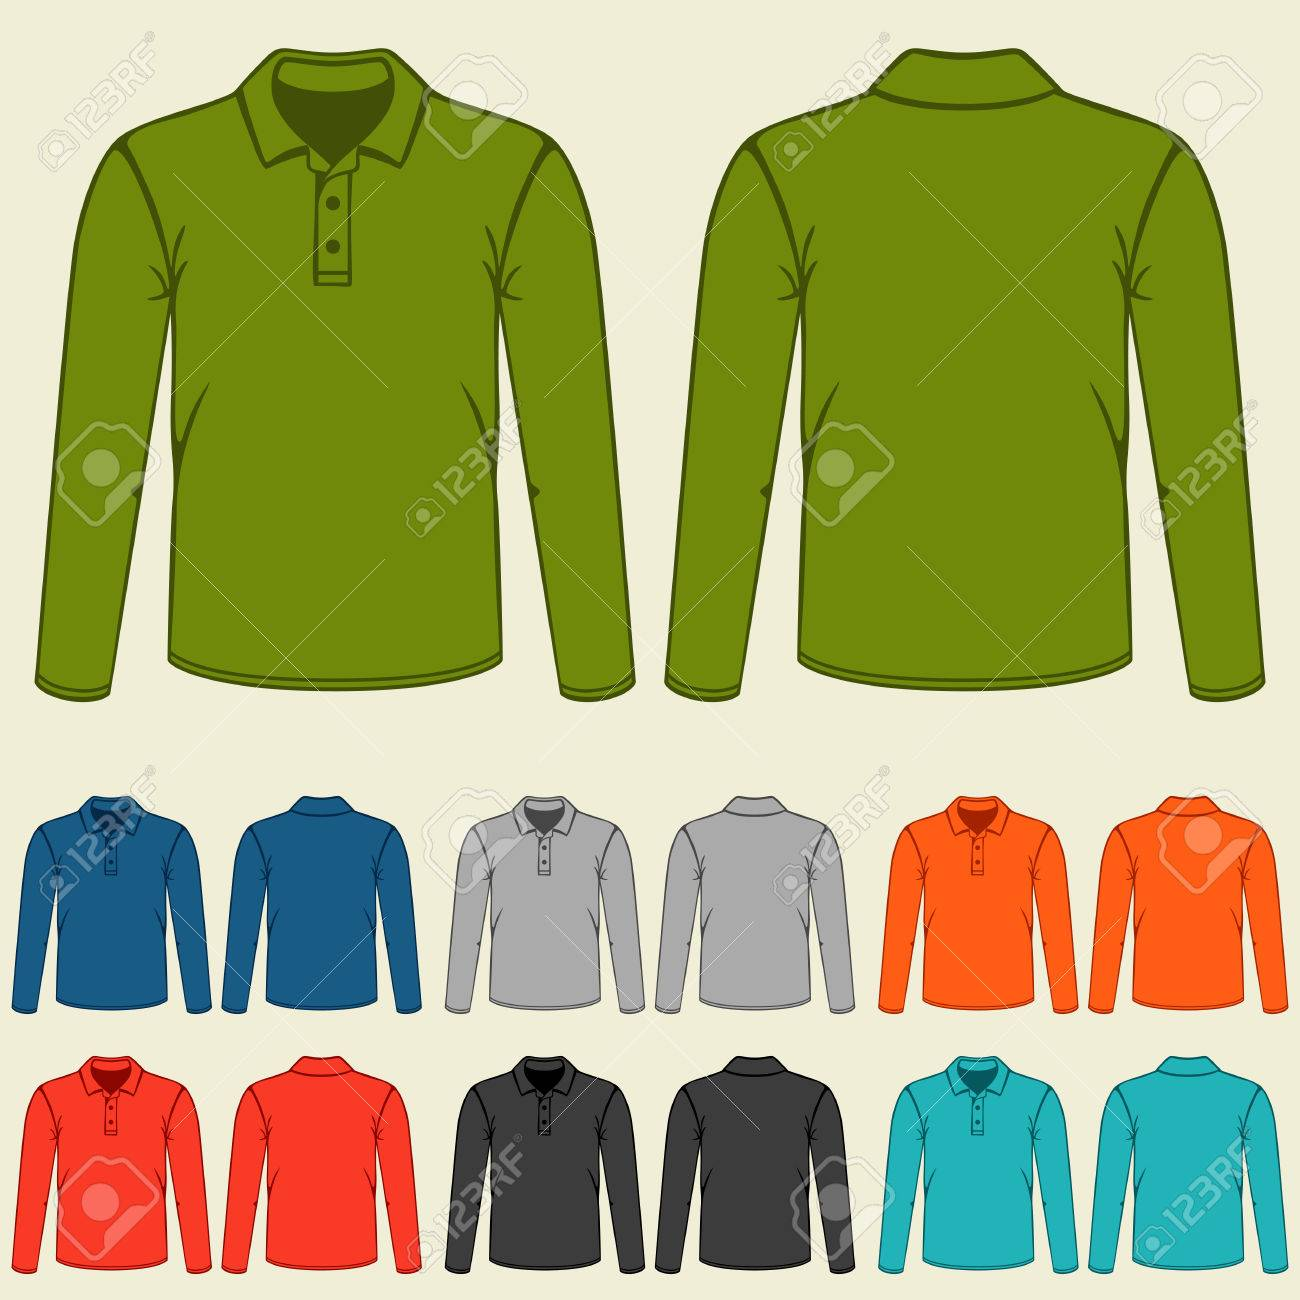 Set Of Colored Polo T-shirts Templates For Men. Royalty Free ...